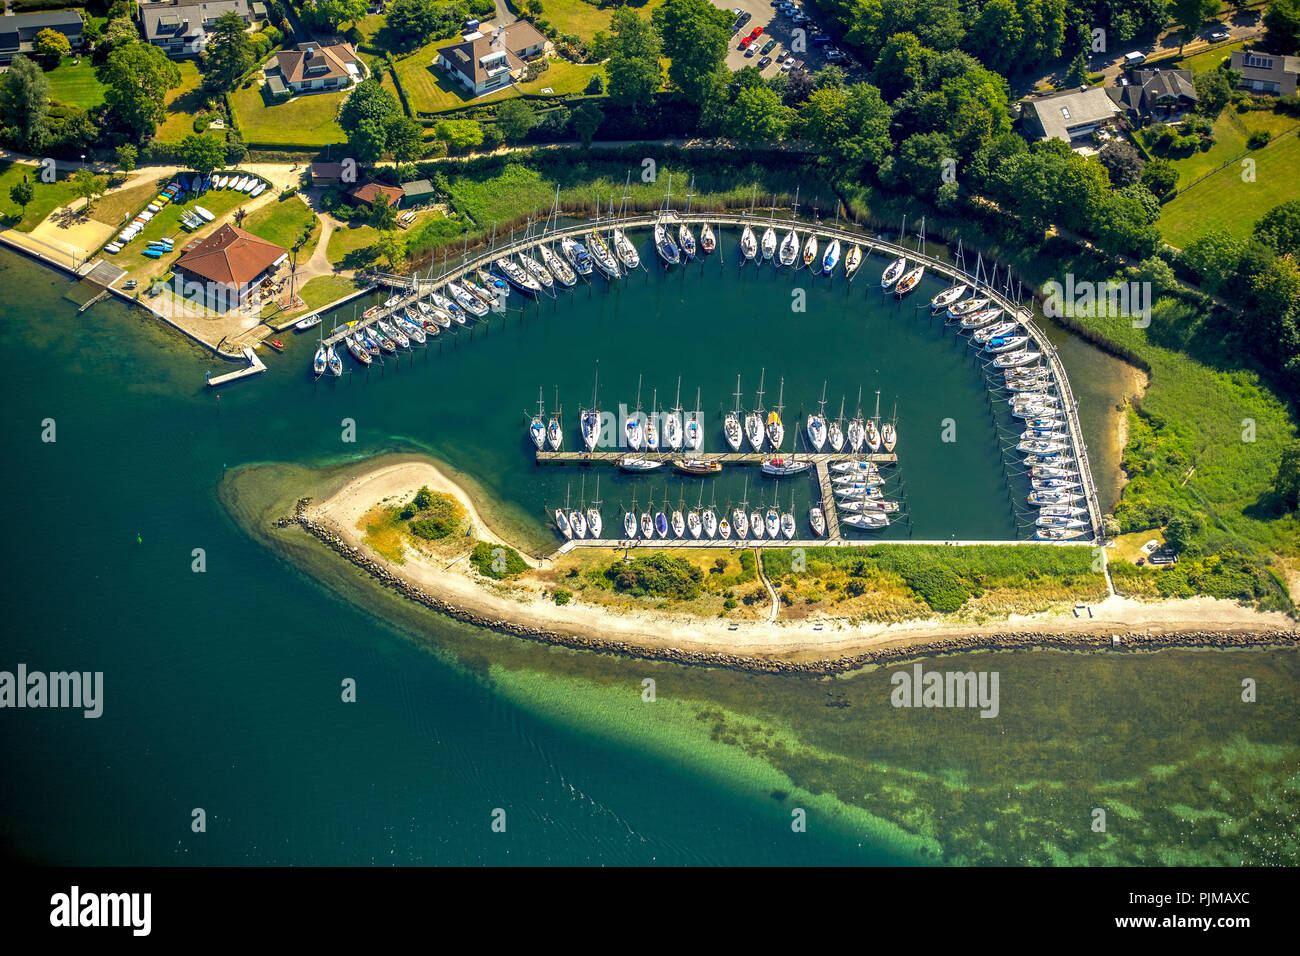 Neustädter Segelverein eV, Neustadt in Holstein, Bay of Lübeck, Hanseatic City, Schleswig-Holstein, Germany - Stock Image